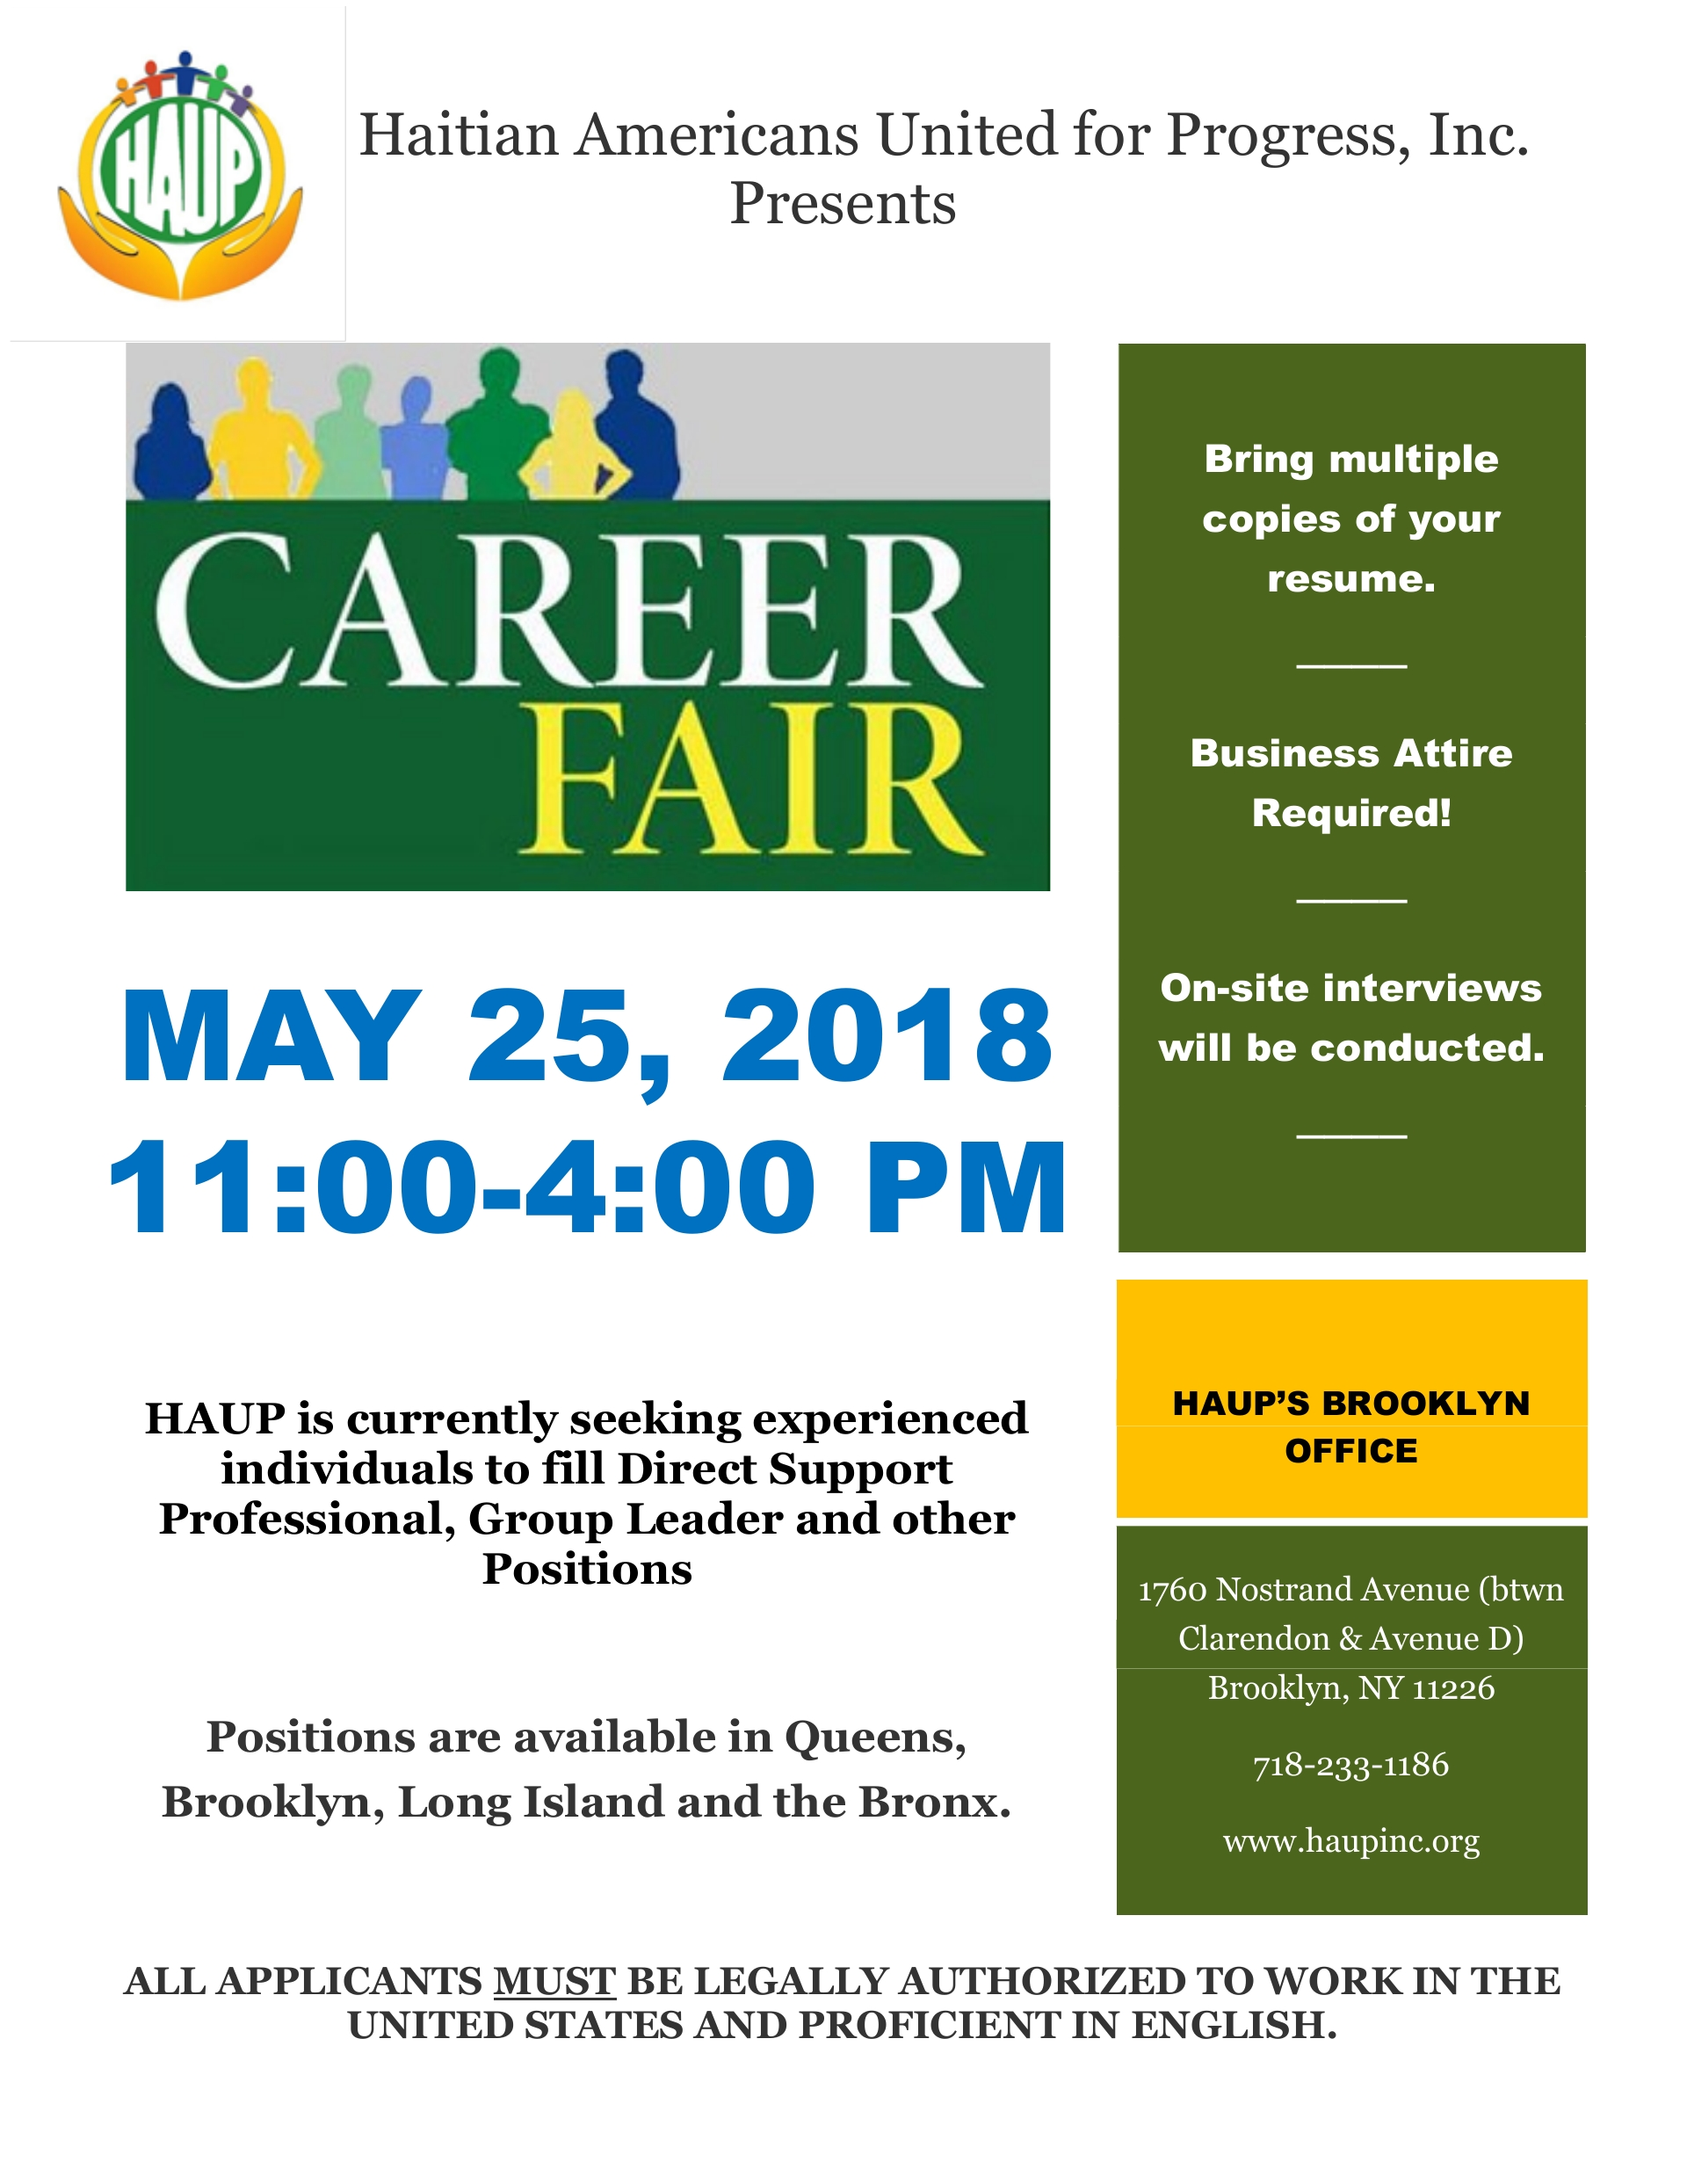 HAUP Job Fair Flyer 05-25-18.jpg